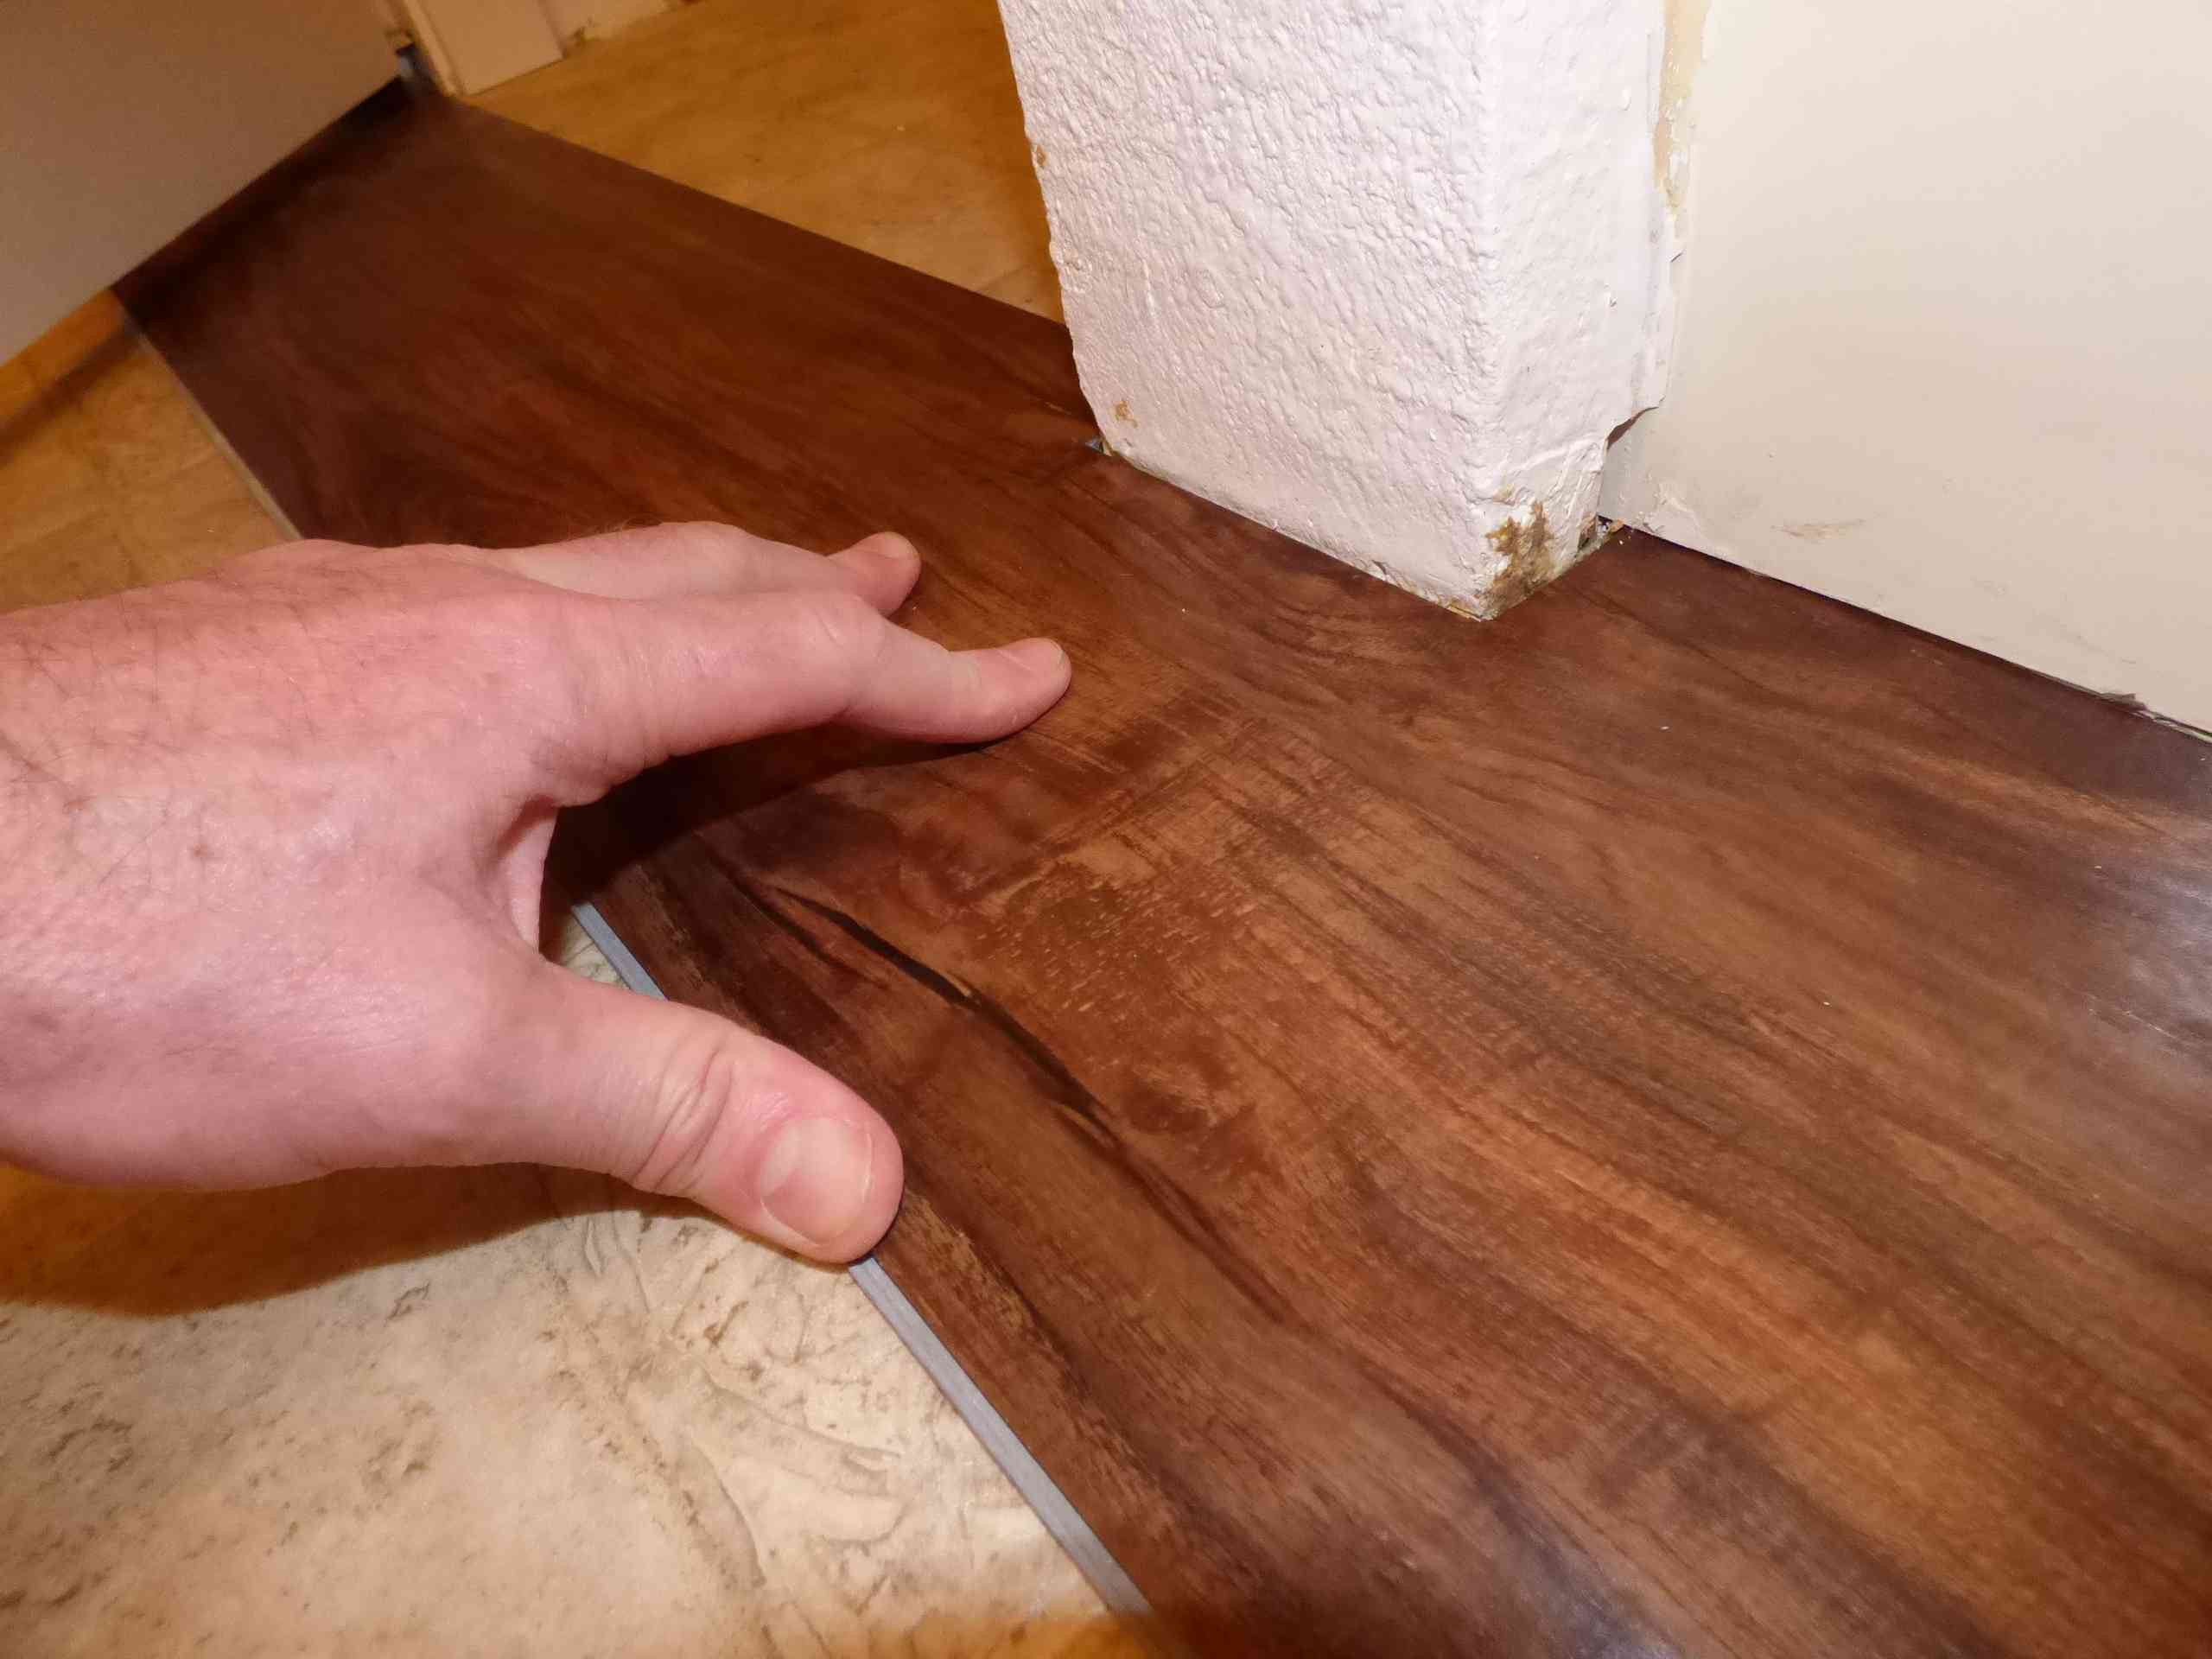 diy hardwood floor installation of its easy and fast to install plank vinyl flooring inside fitting plank around protrusions 56a4a04f3df78cf7728350a3 jpg